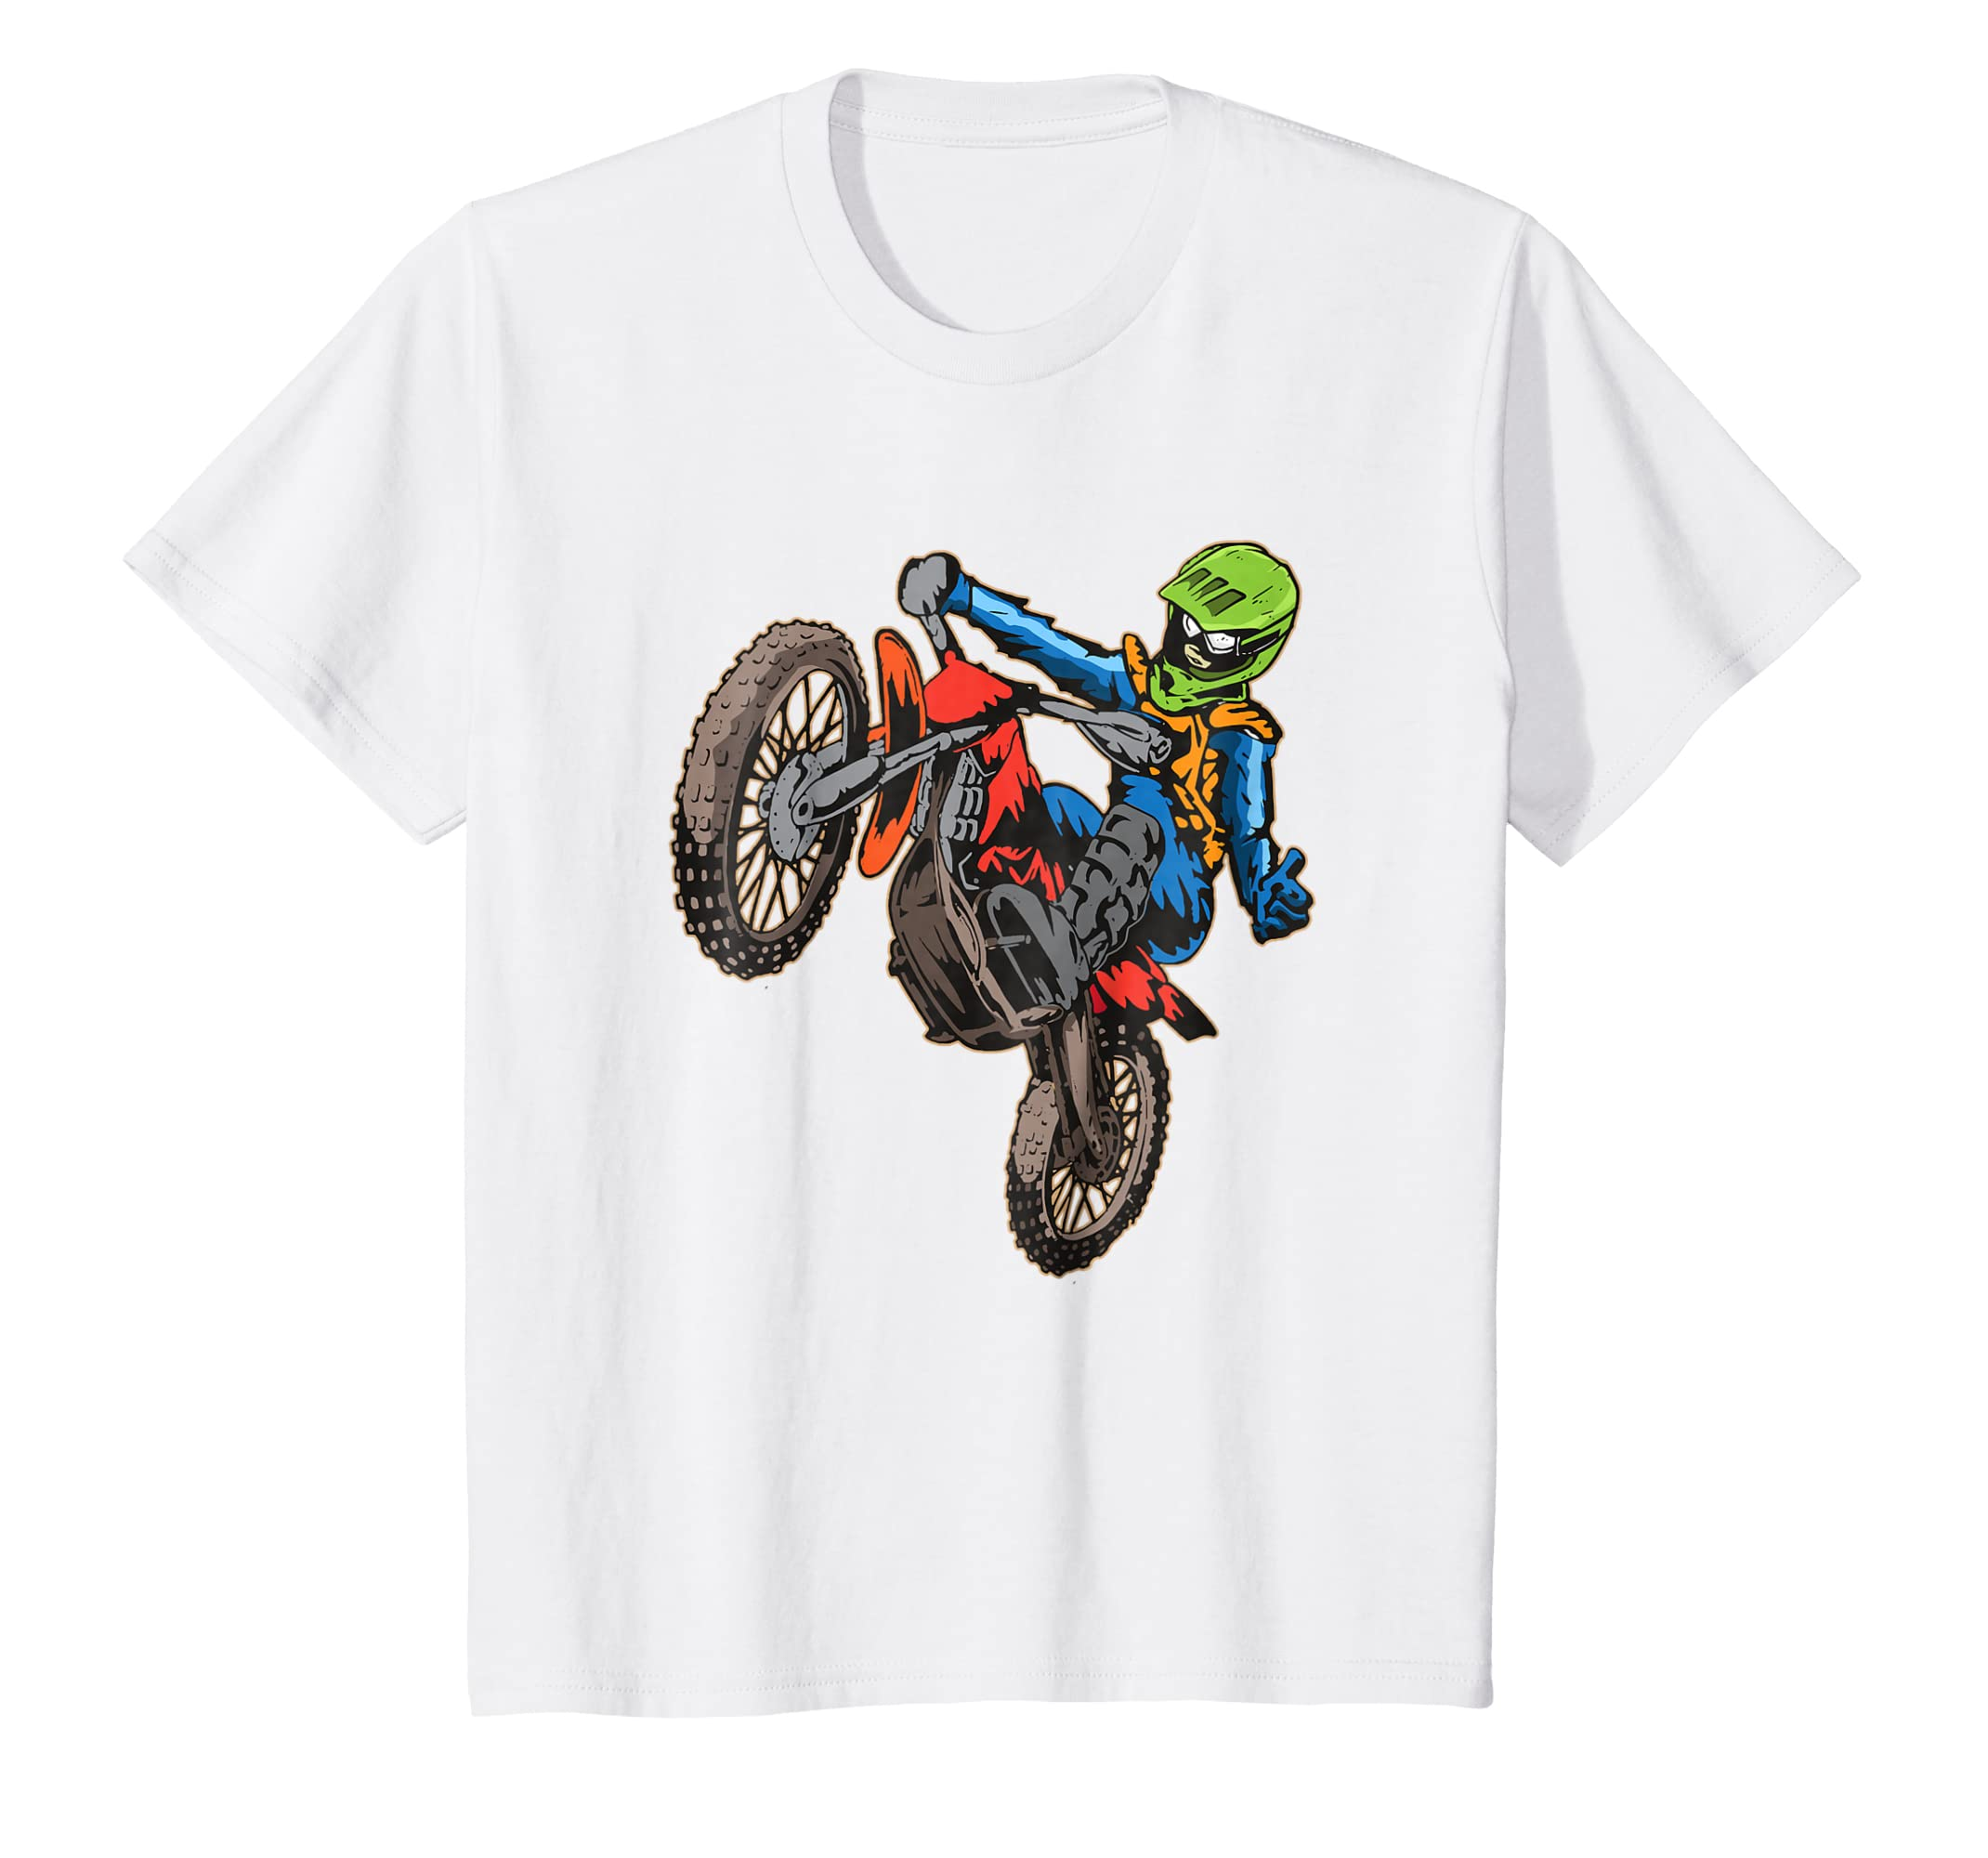 Amazon.com: Vintage Dirtbike shirt - motorcycle dirt bike tshirt gift:  Clothing